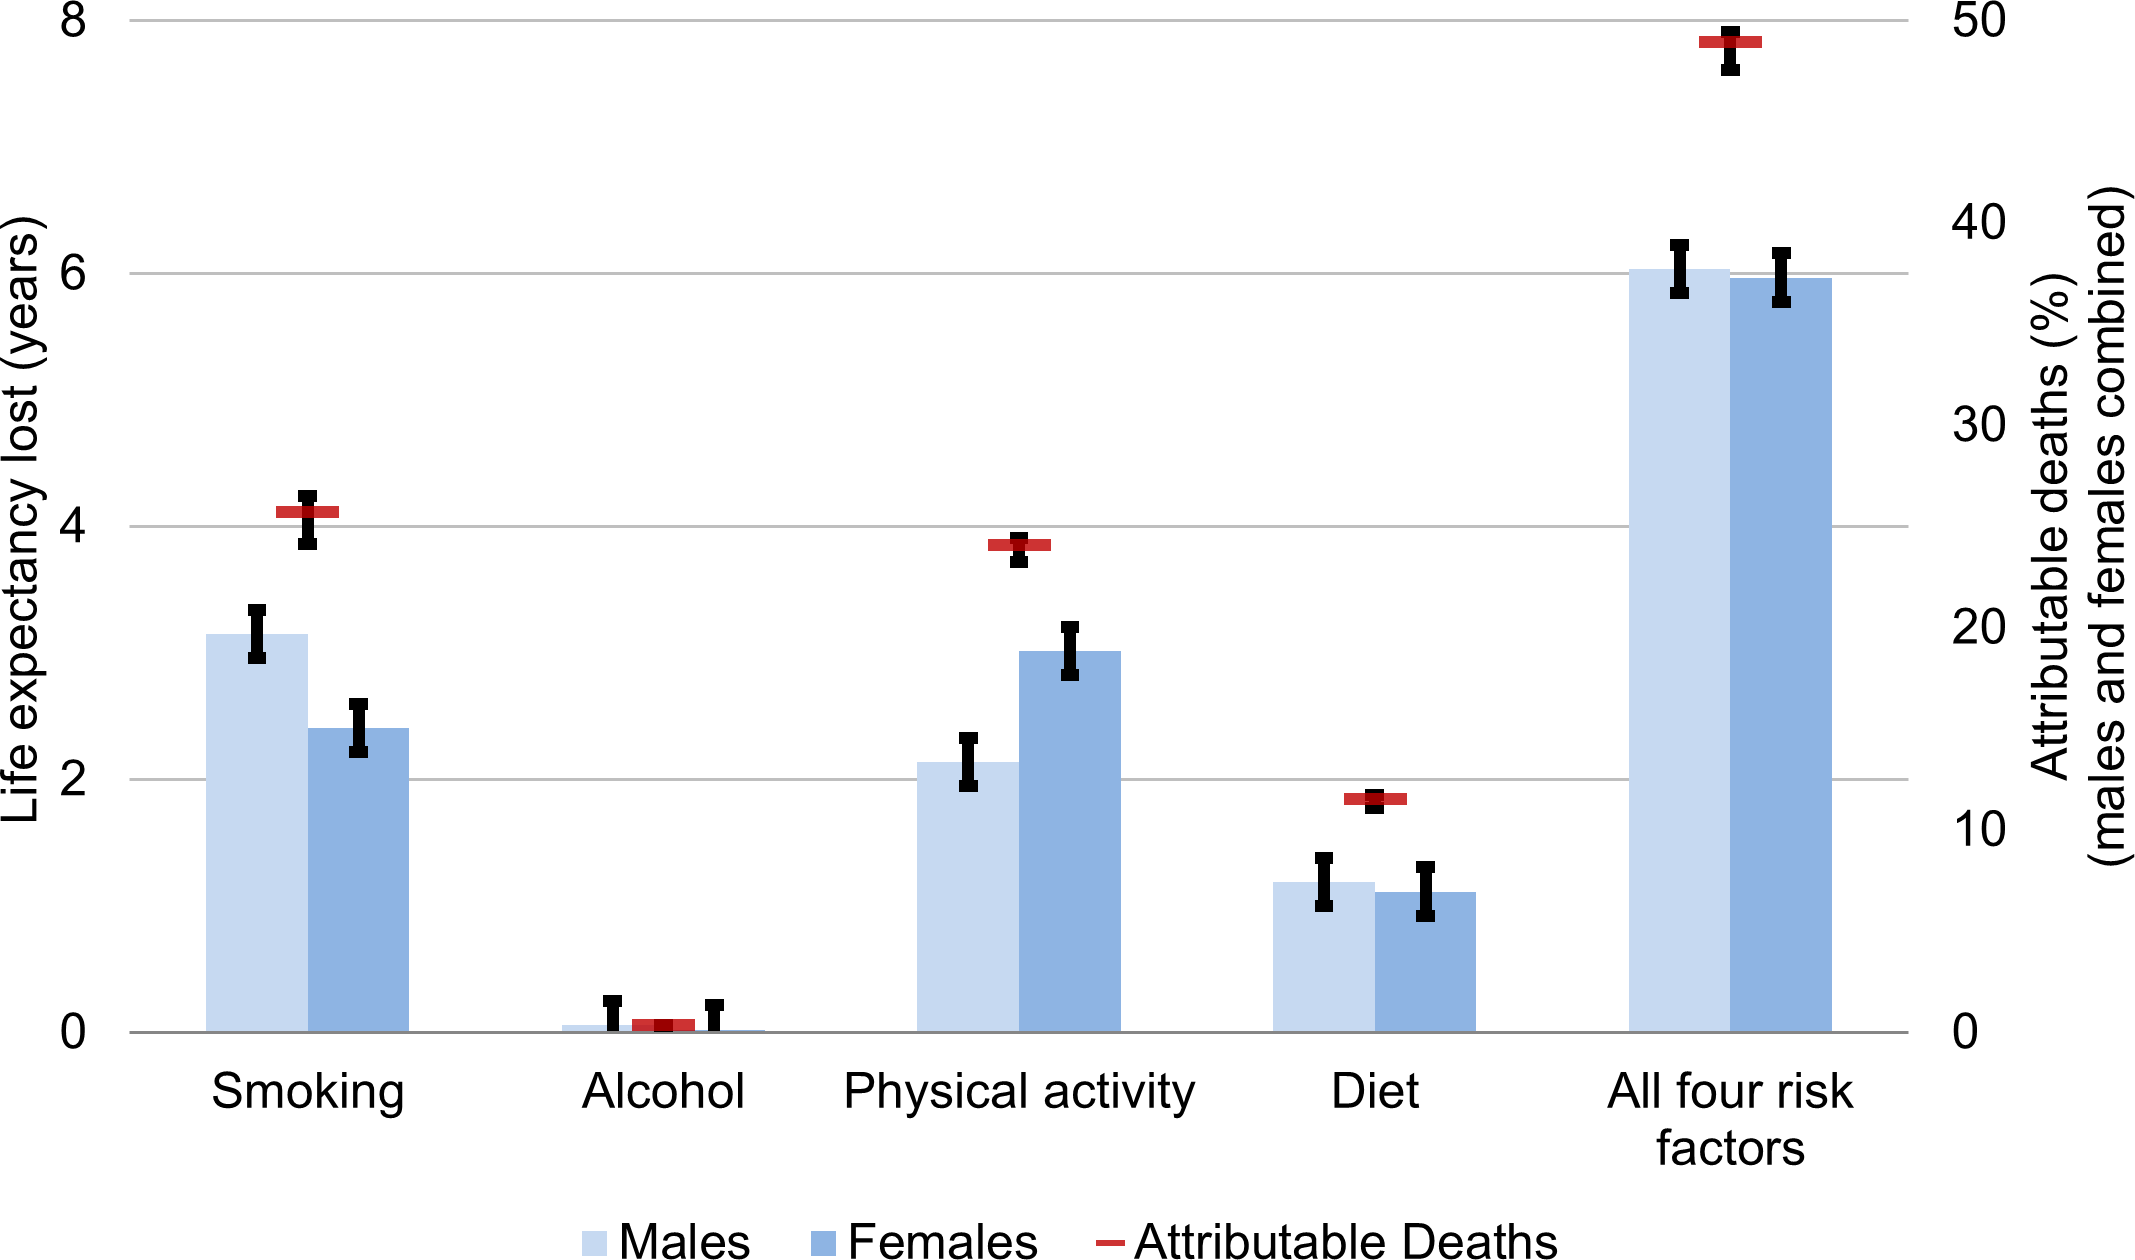 Unhealthy behaviour attribution to life expectancy lost and mortality for Canadians aged 20 and older, 2010.